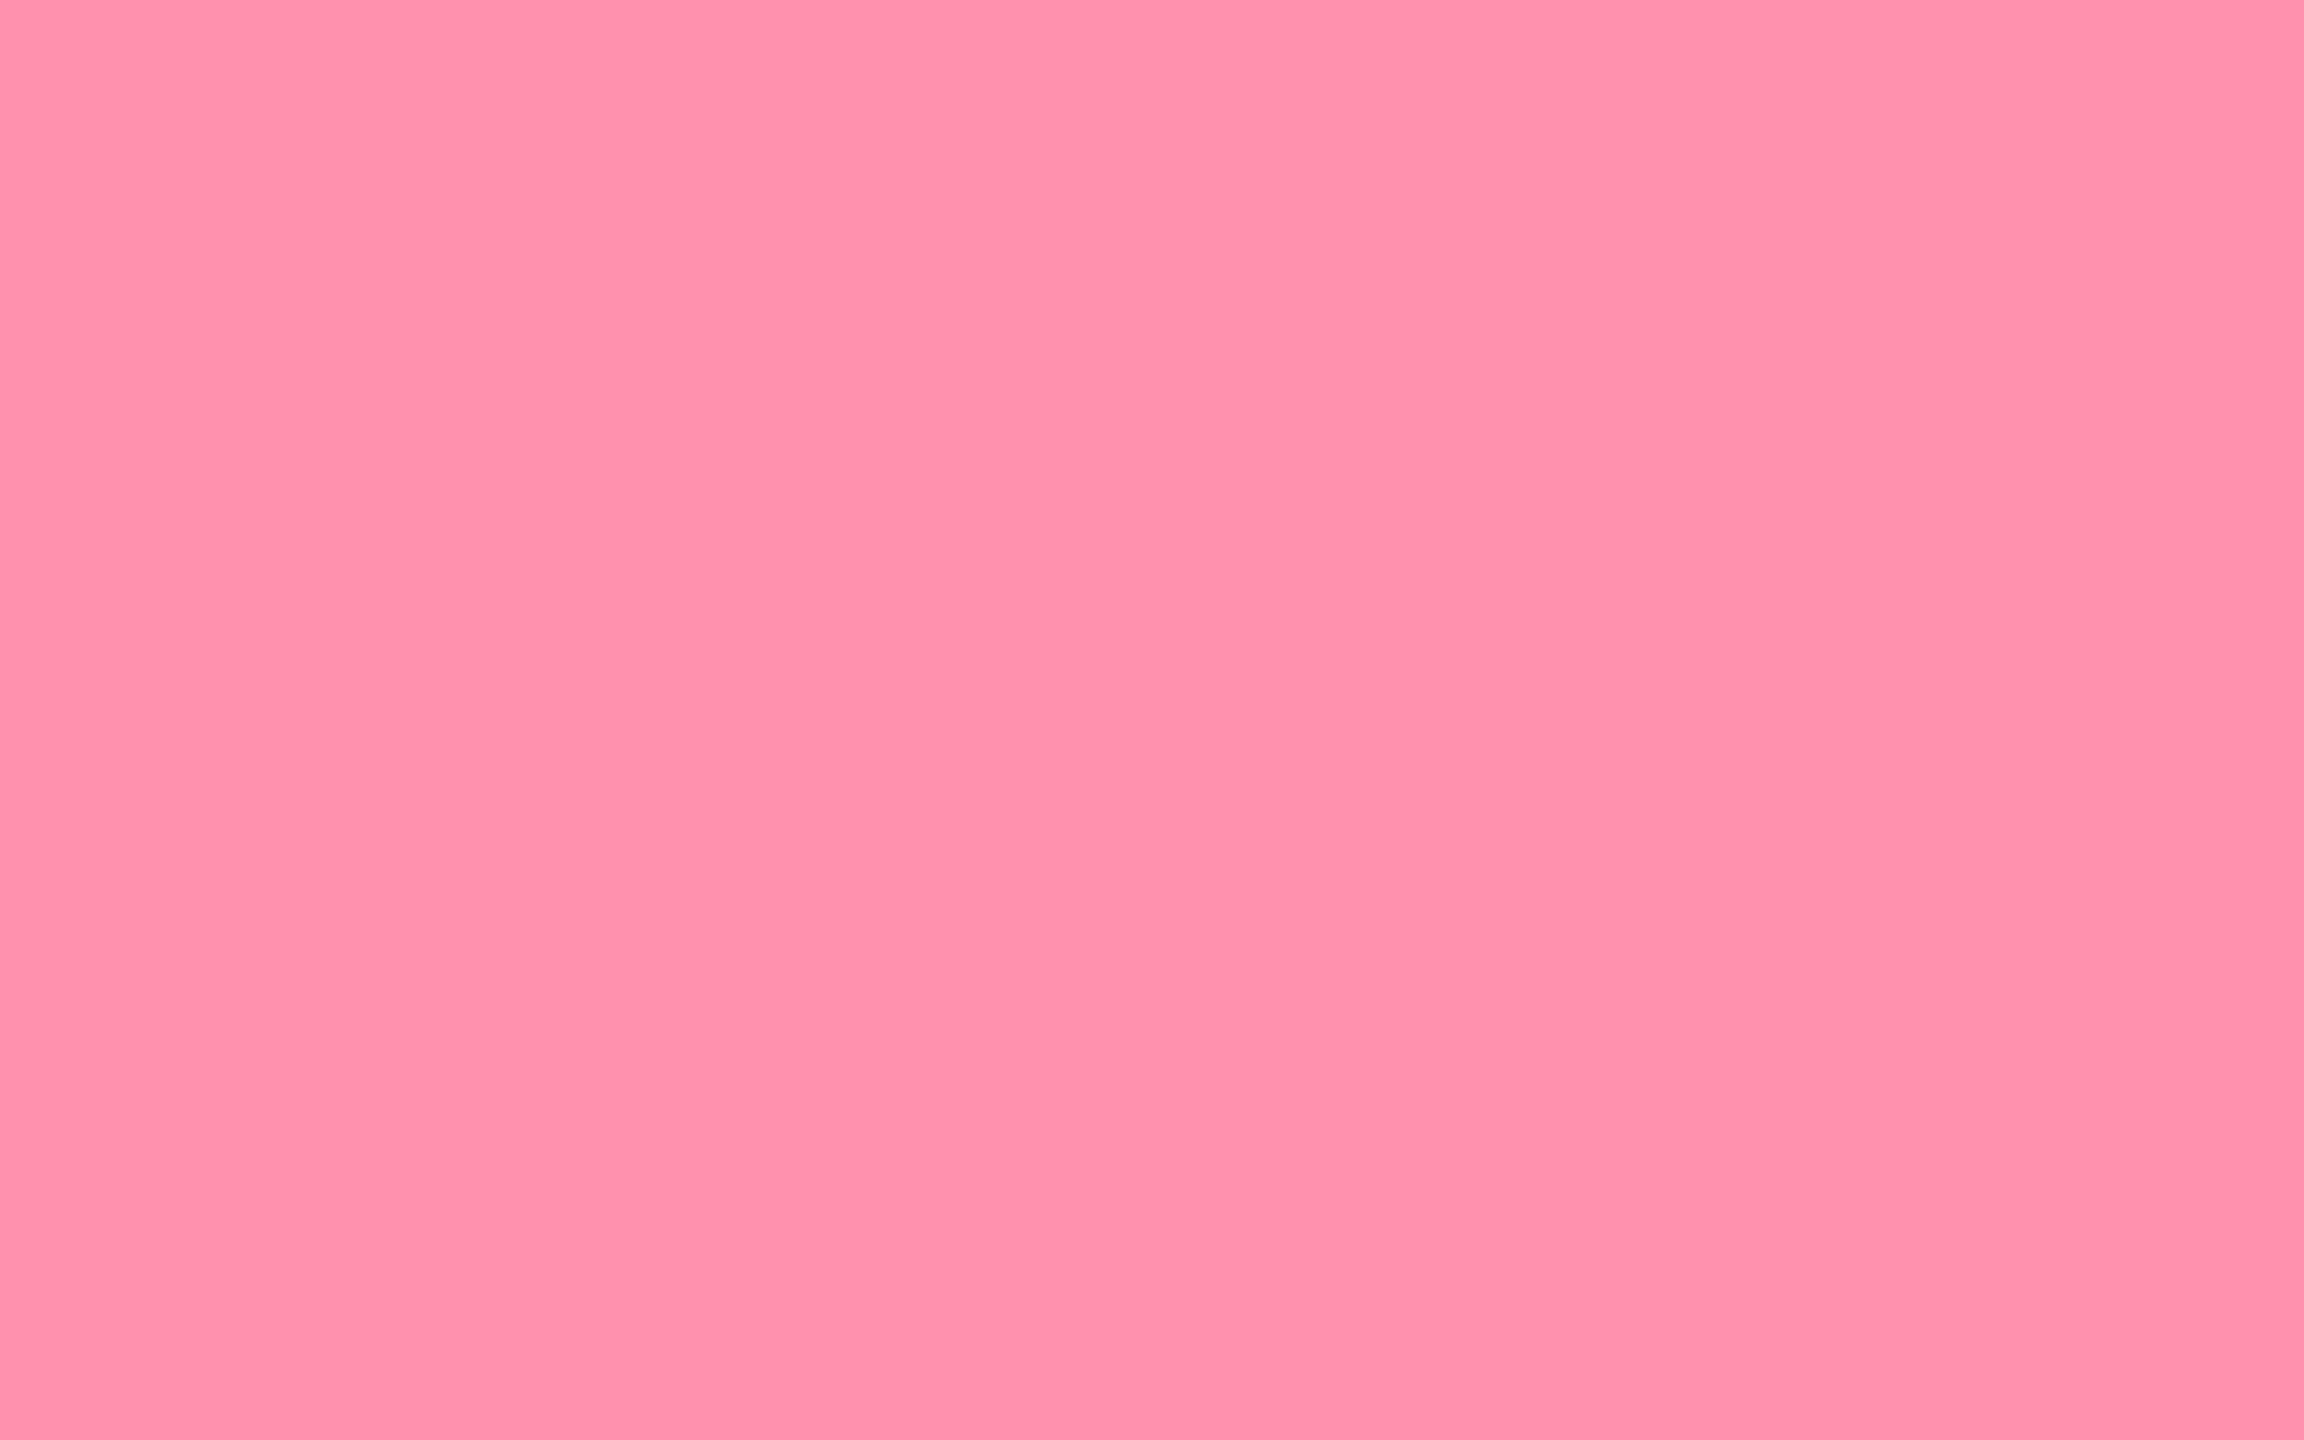 2304x1440 Schauss Pink Solid Color Background